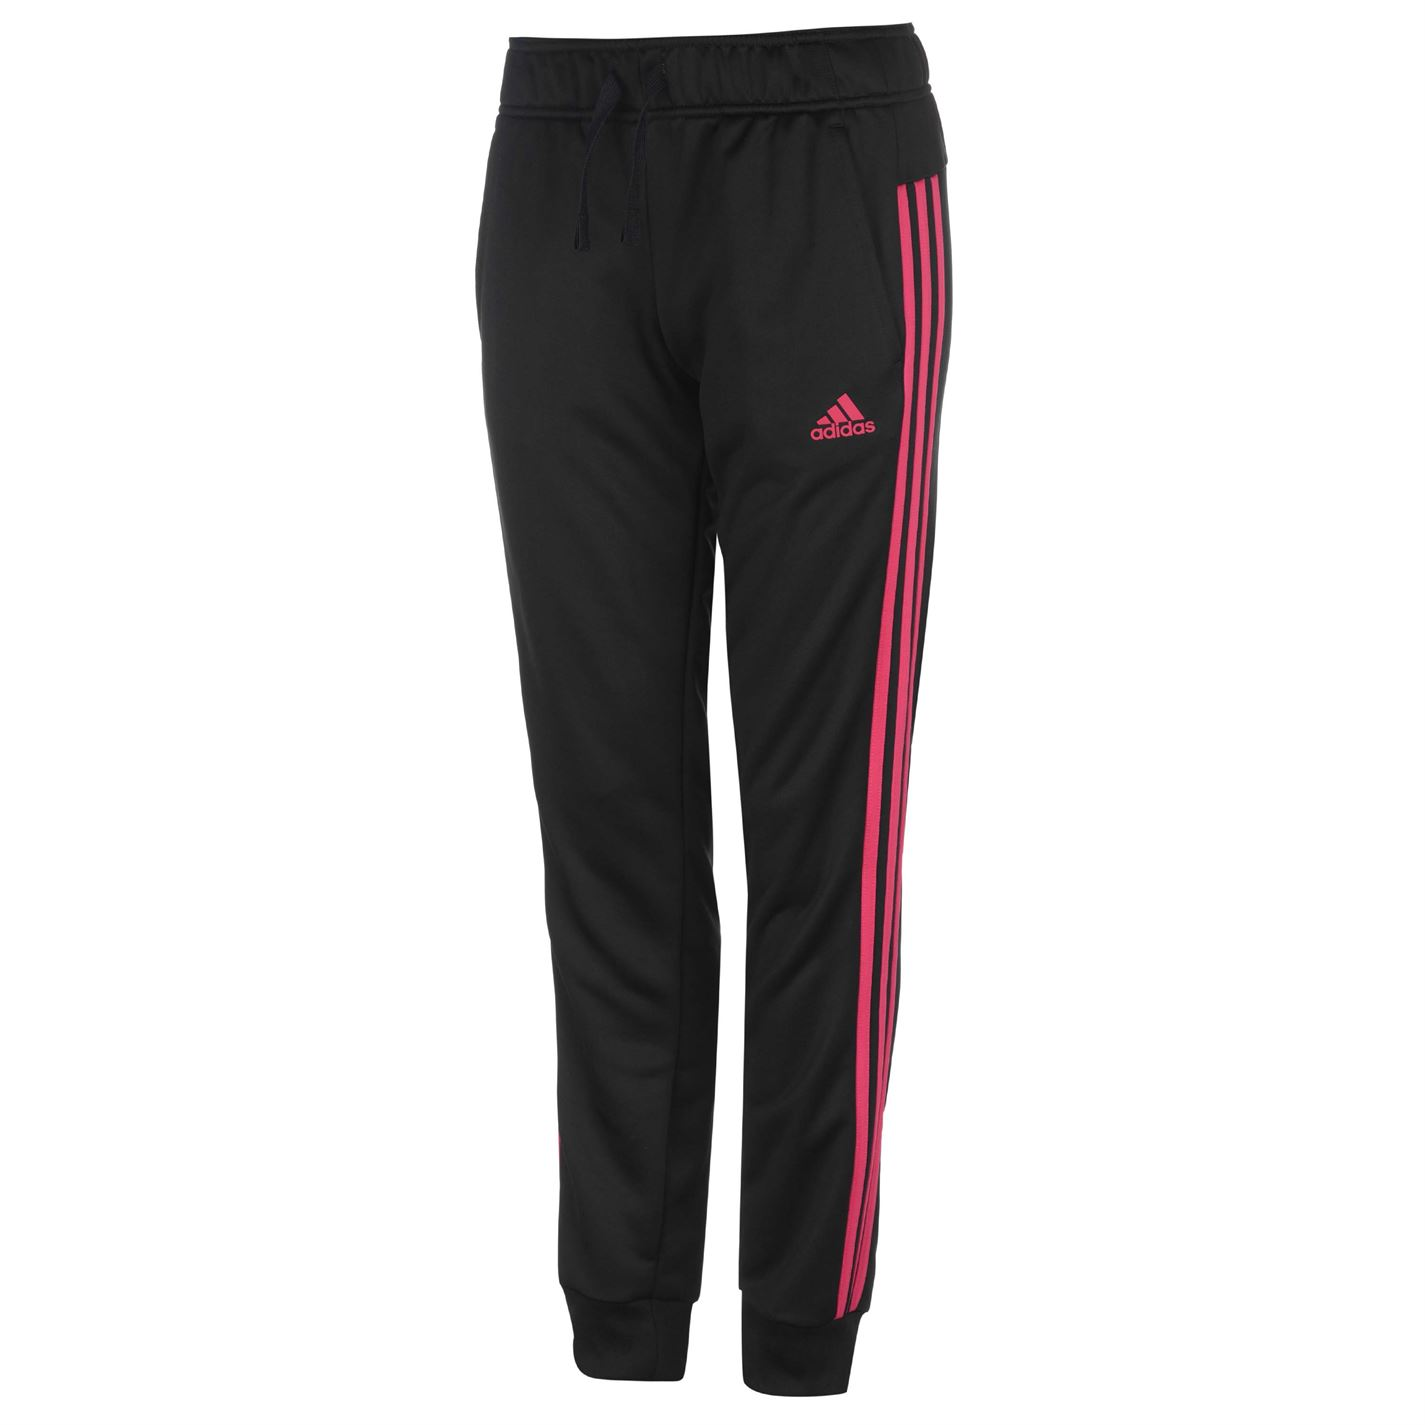 brand new b7033 96950 ... adidas Re Focus Tracksuit Ladies Poly Full Length Sleeve Hooded Zip  Zipped 5 adidas Re Focus Tracksuit Ladies Poly Full Length Sleeve Hooded  Zip Zipped ...